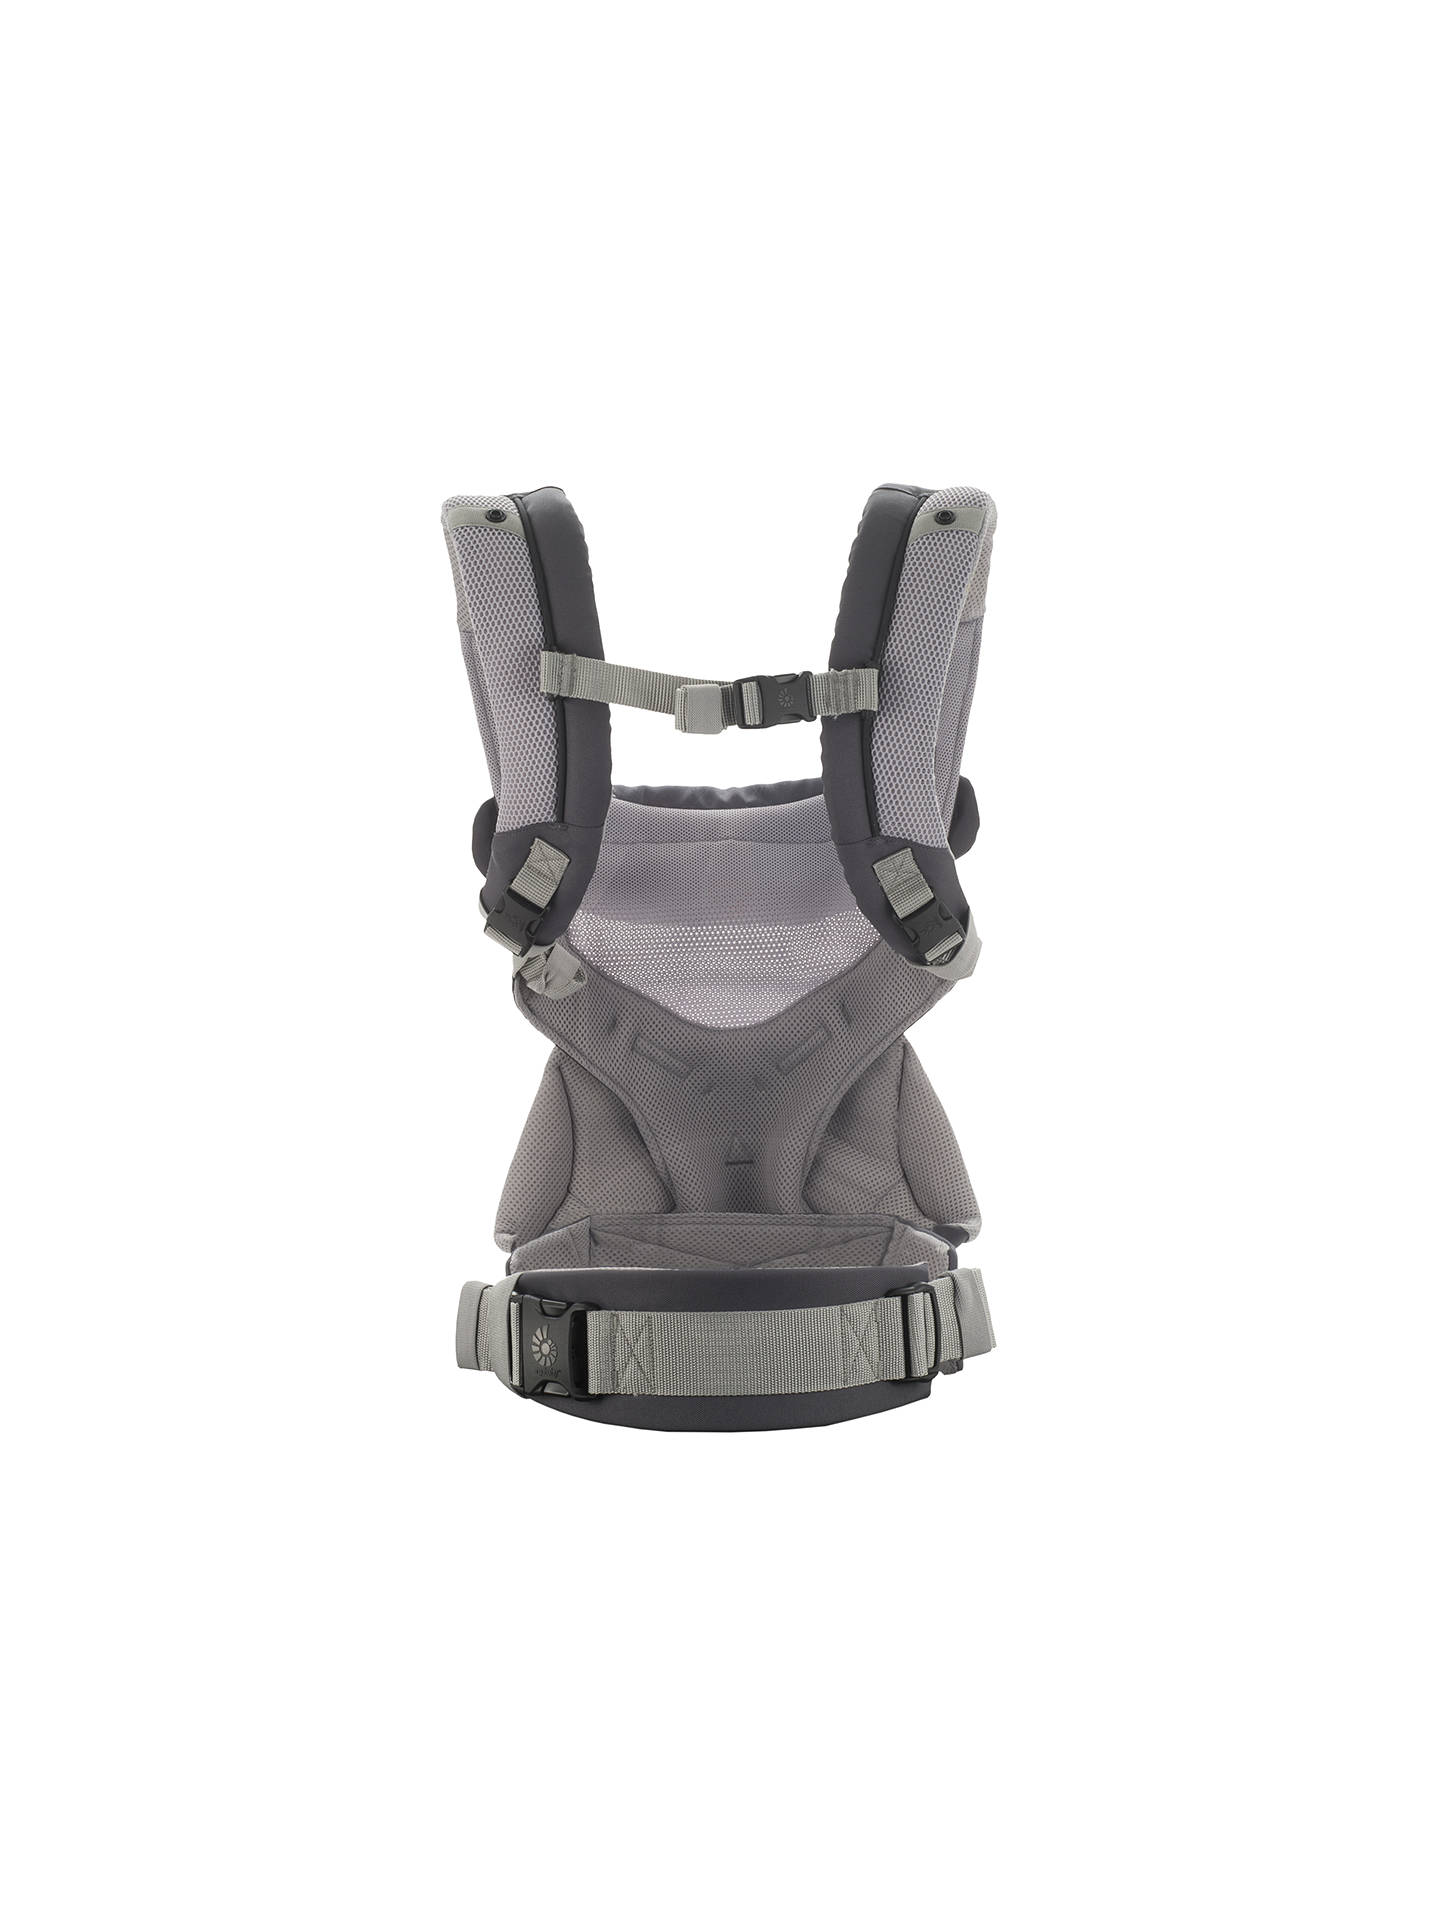 d98bdb6daa1 ... Buy Ergobaby 360 Performance Baby Carrier